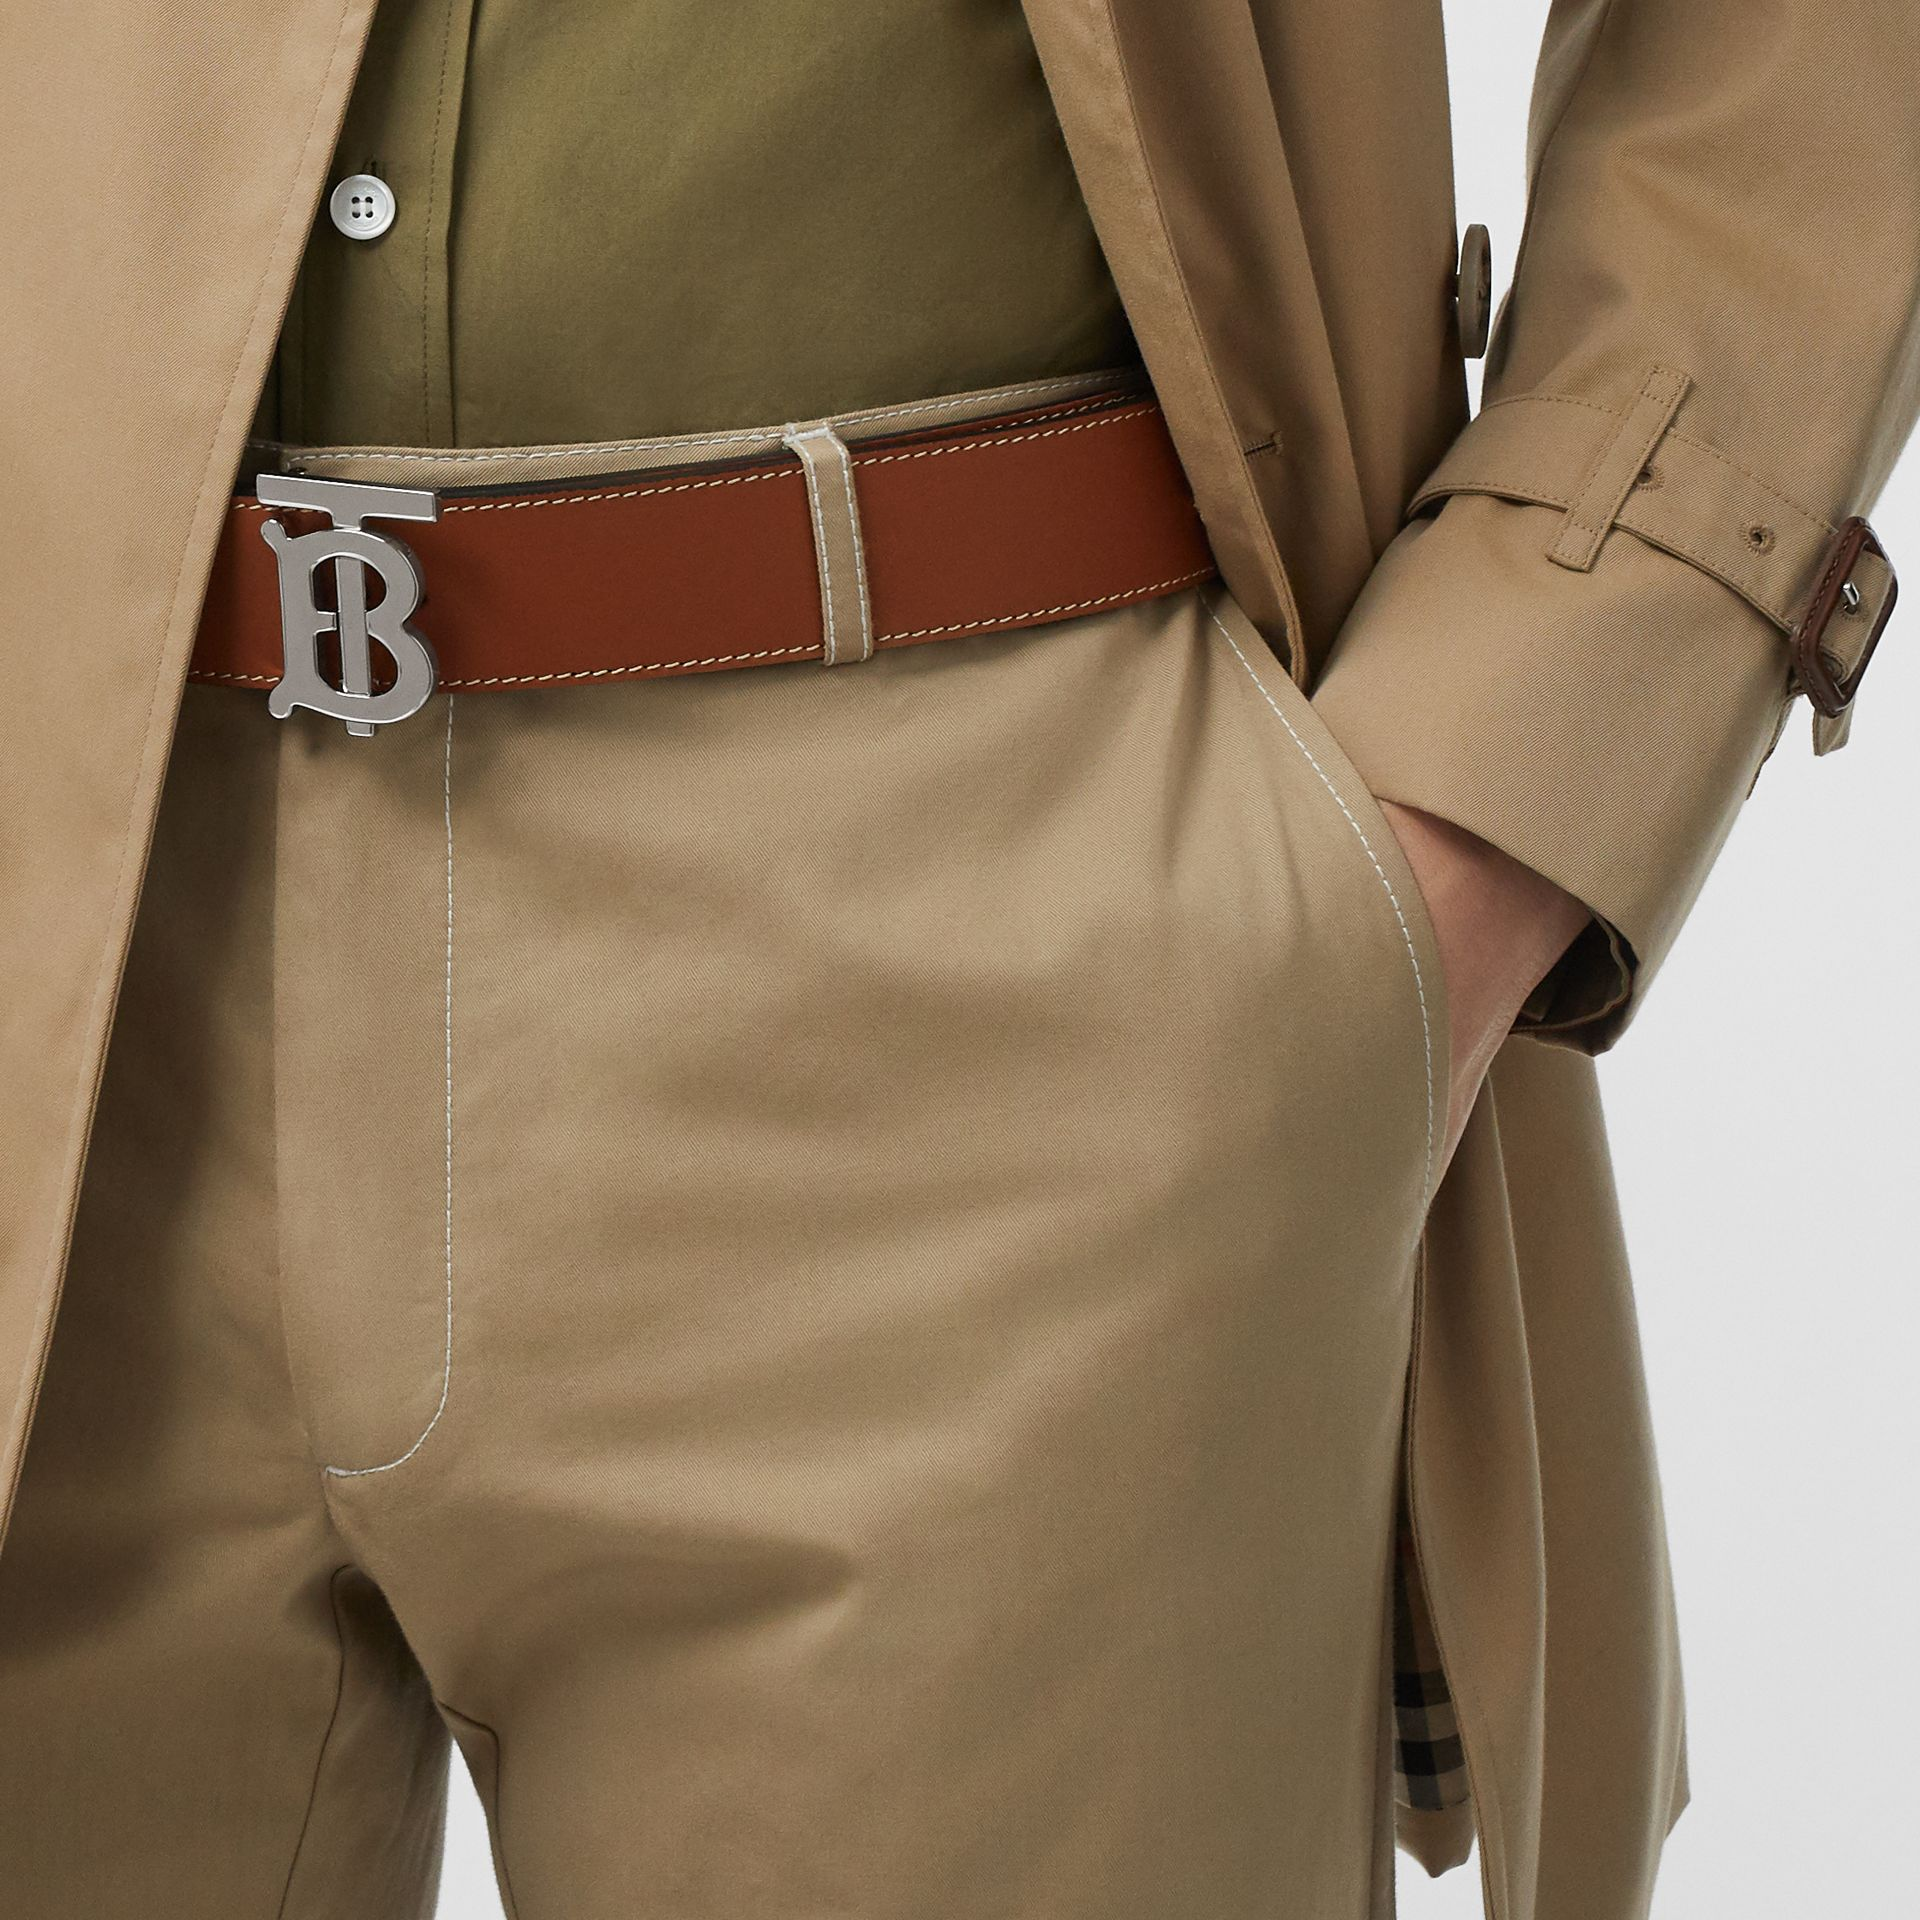 Reversible Monogram Motif Leather Belt in Tan/black - Men | Burberry - gallery image 2